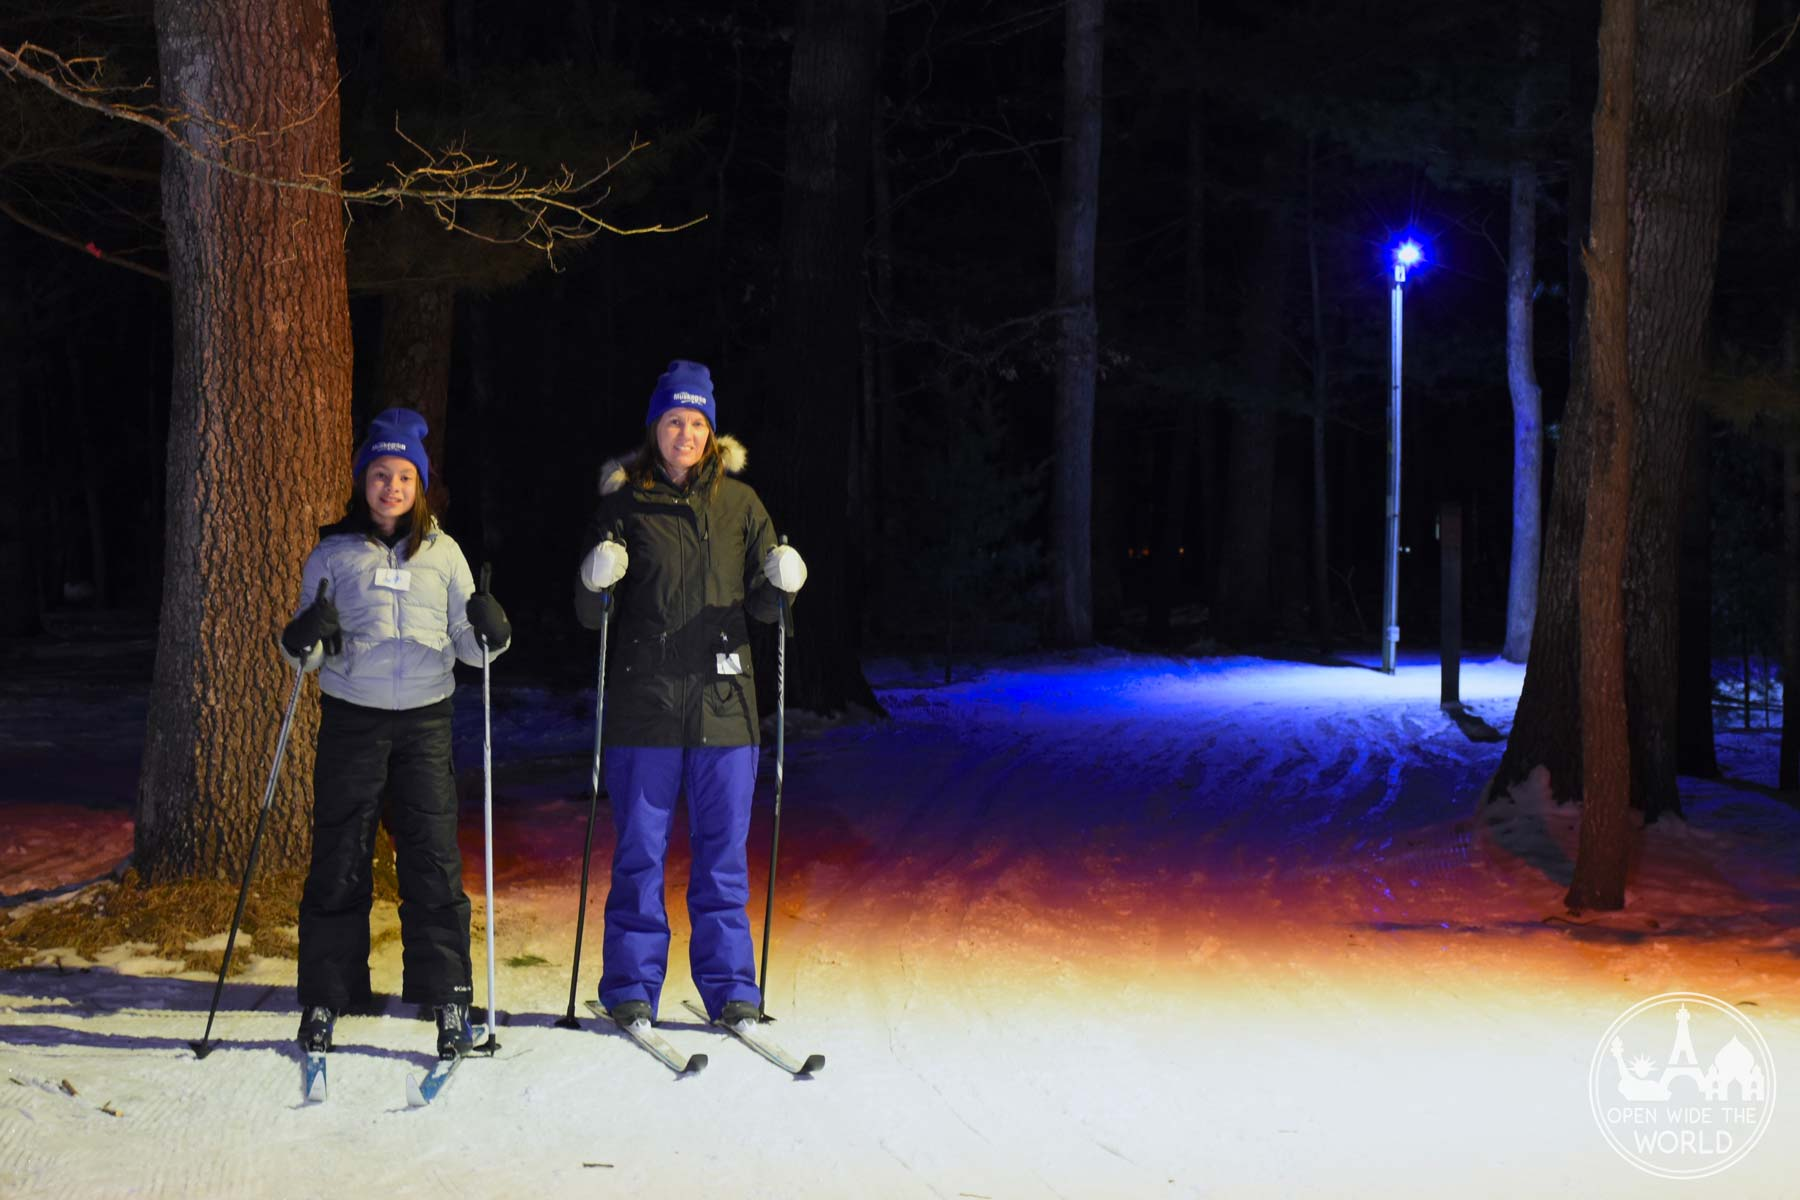 Lighted nighttime cross-country skiing at Muskegon Winter Sports Complex, Michigan. #xcountryskiing #openwidetheworld